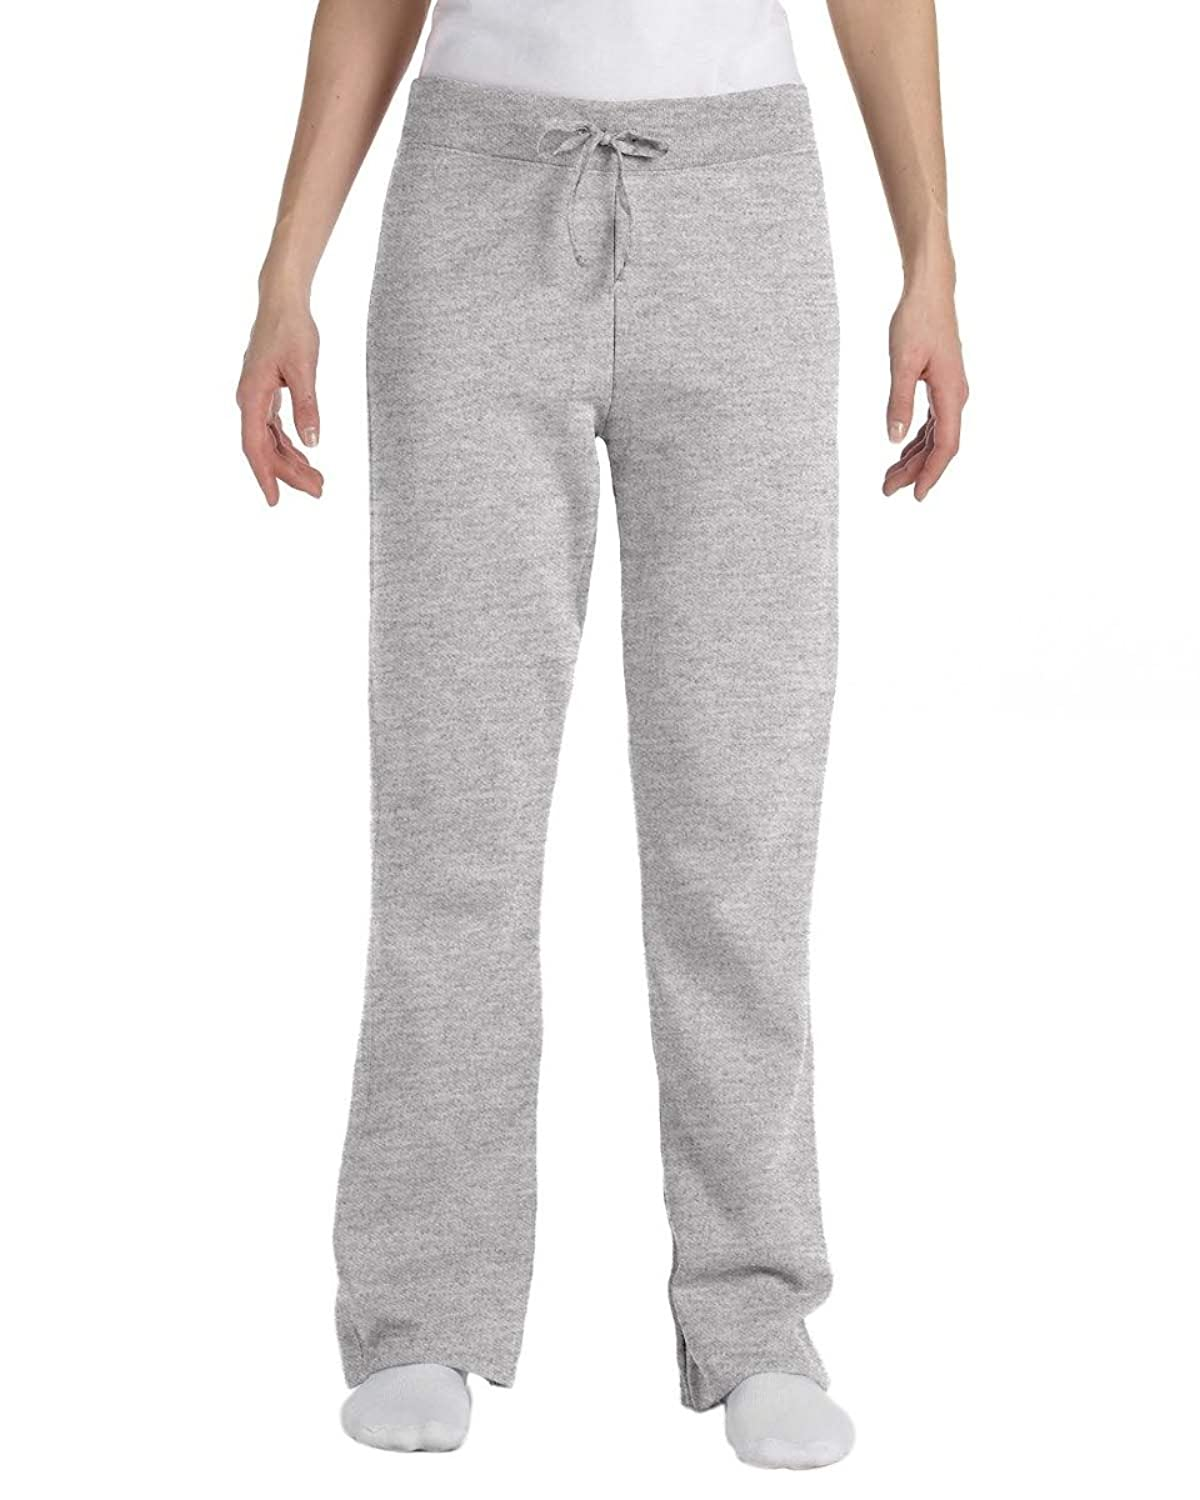 HN LAD 8OZ 80/20 FLEECE PANT (LIGHT STEEL) (2XL)